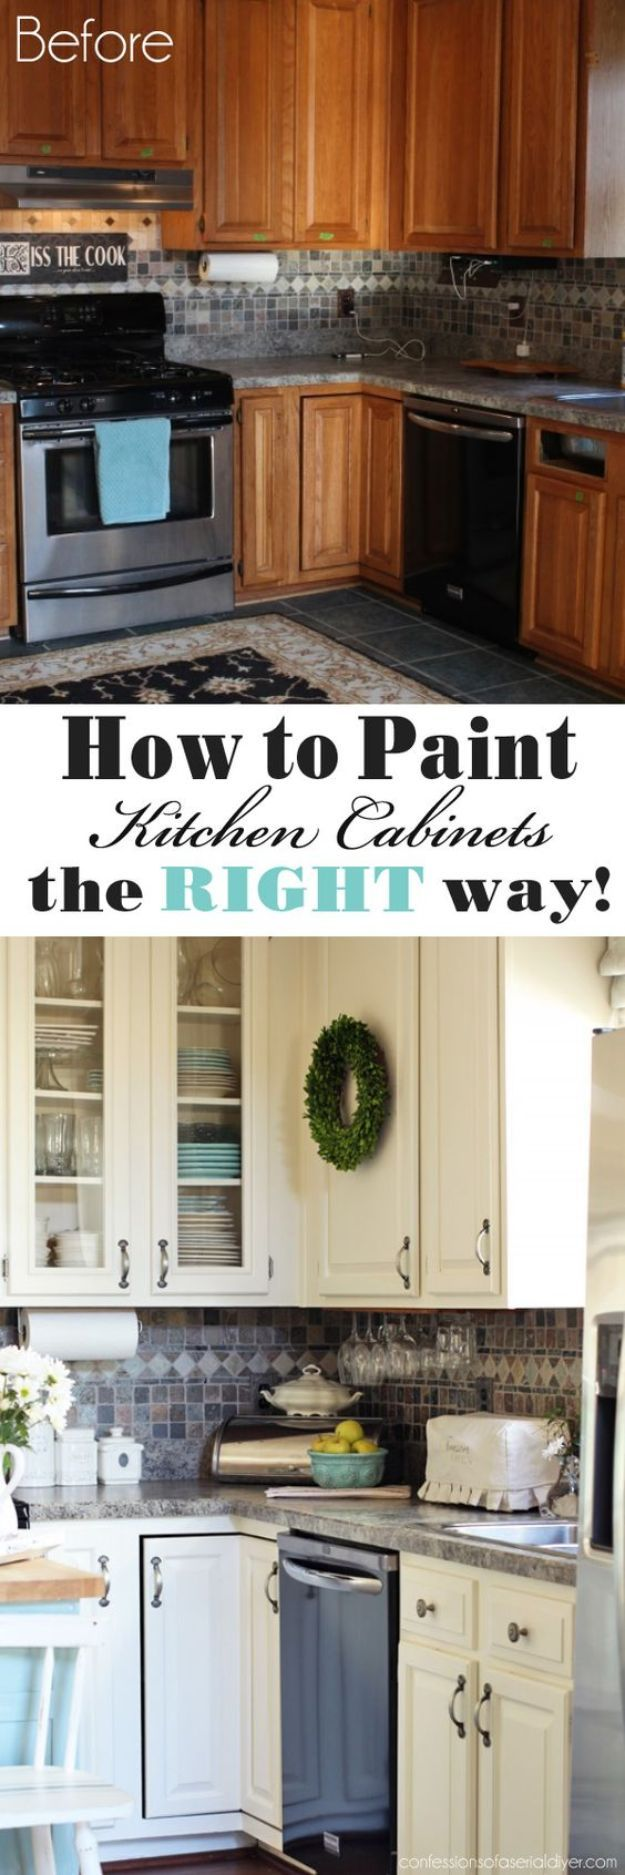 DIY Ideas For Kitchen Cabinets in Home Decor Projects